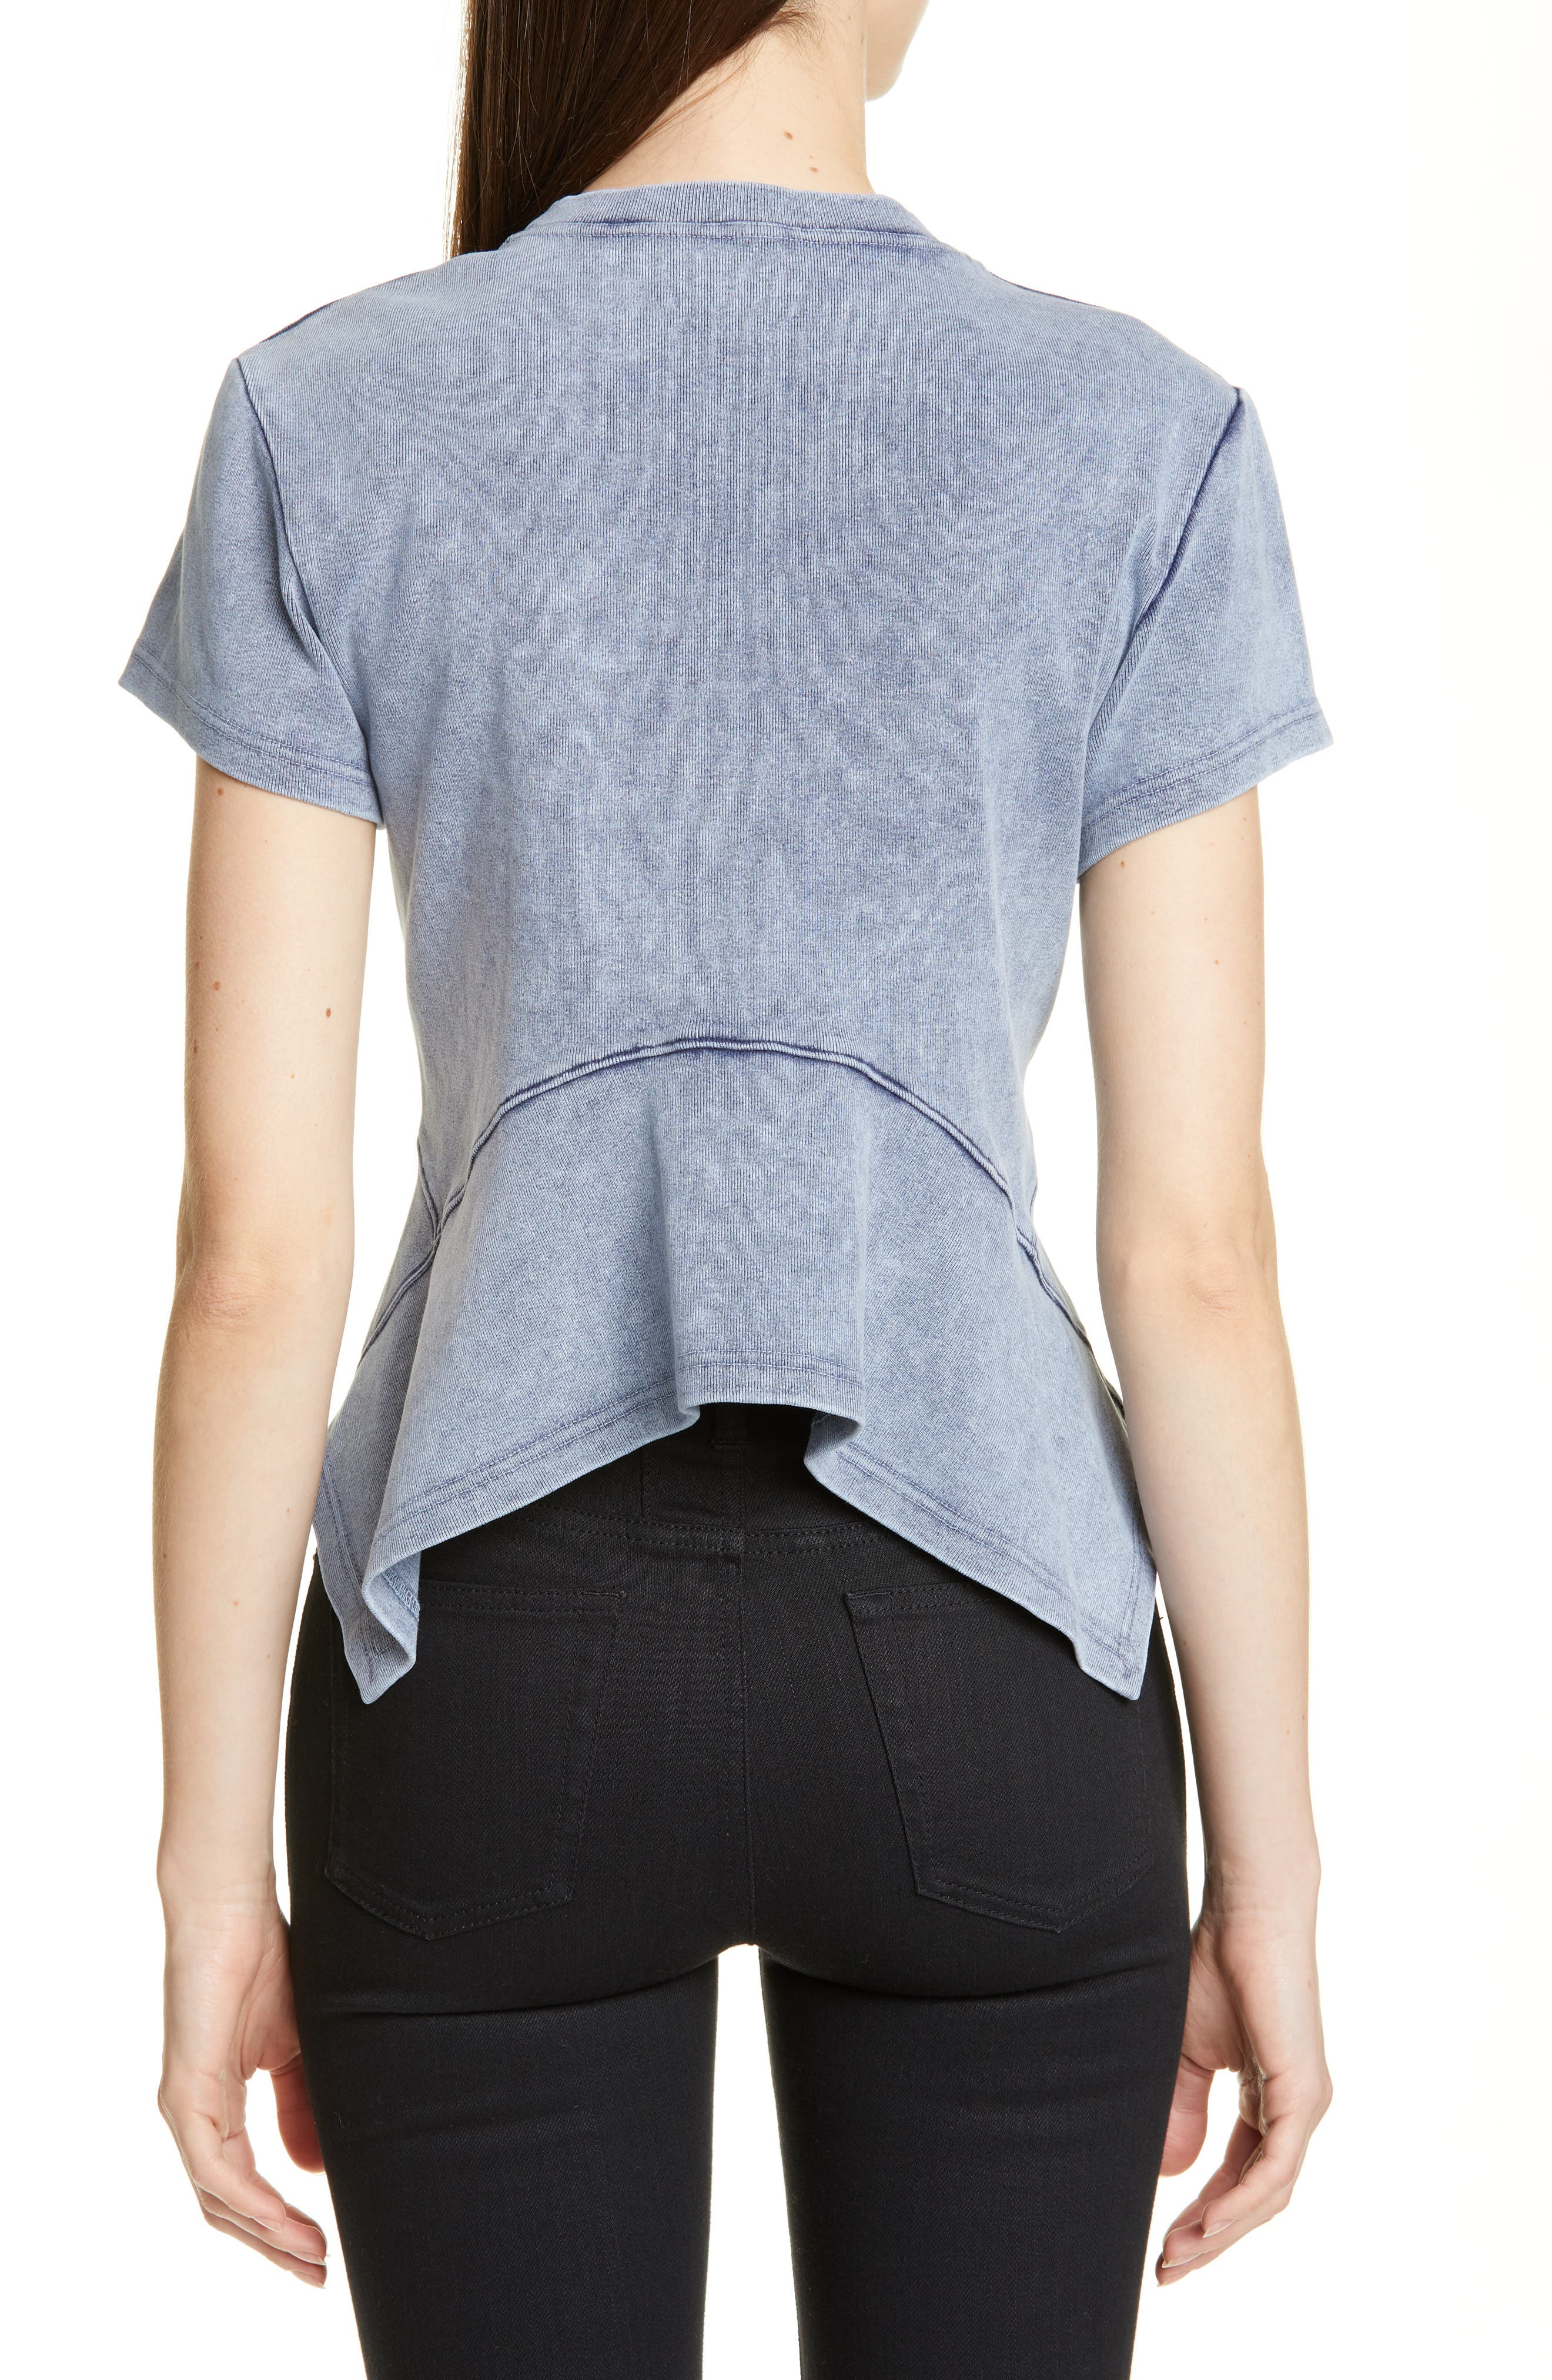 PROENZA SCHOULER, Washed Jersey Top, Alternate thumbnail 2, color, WASHED ACID